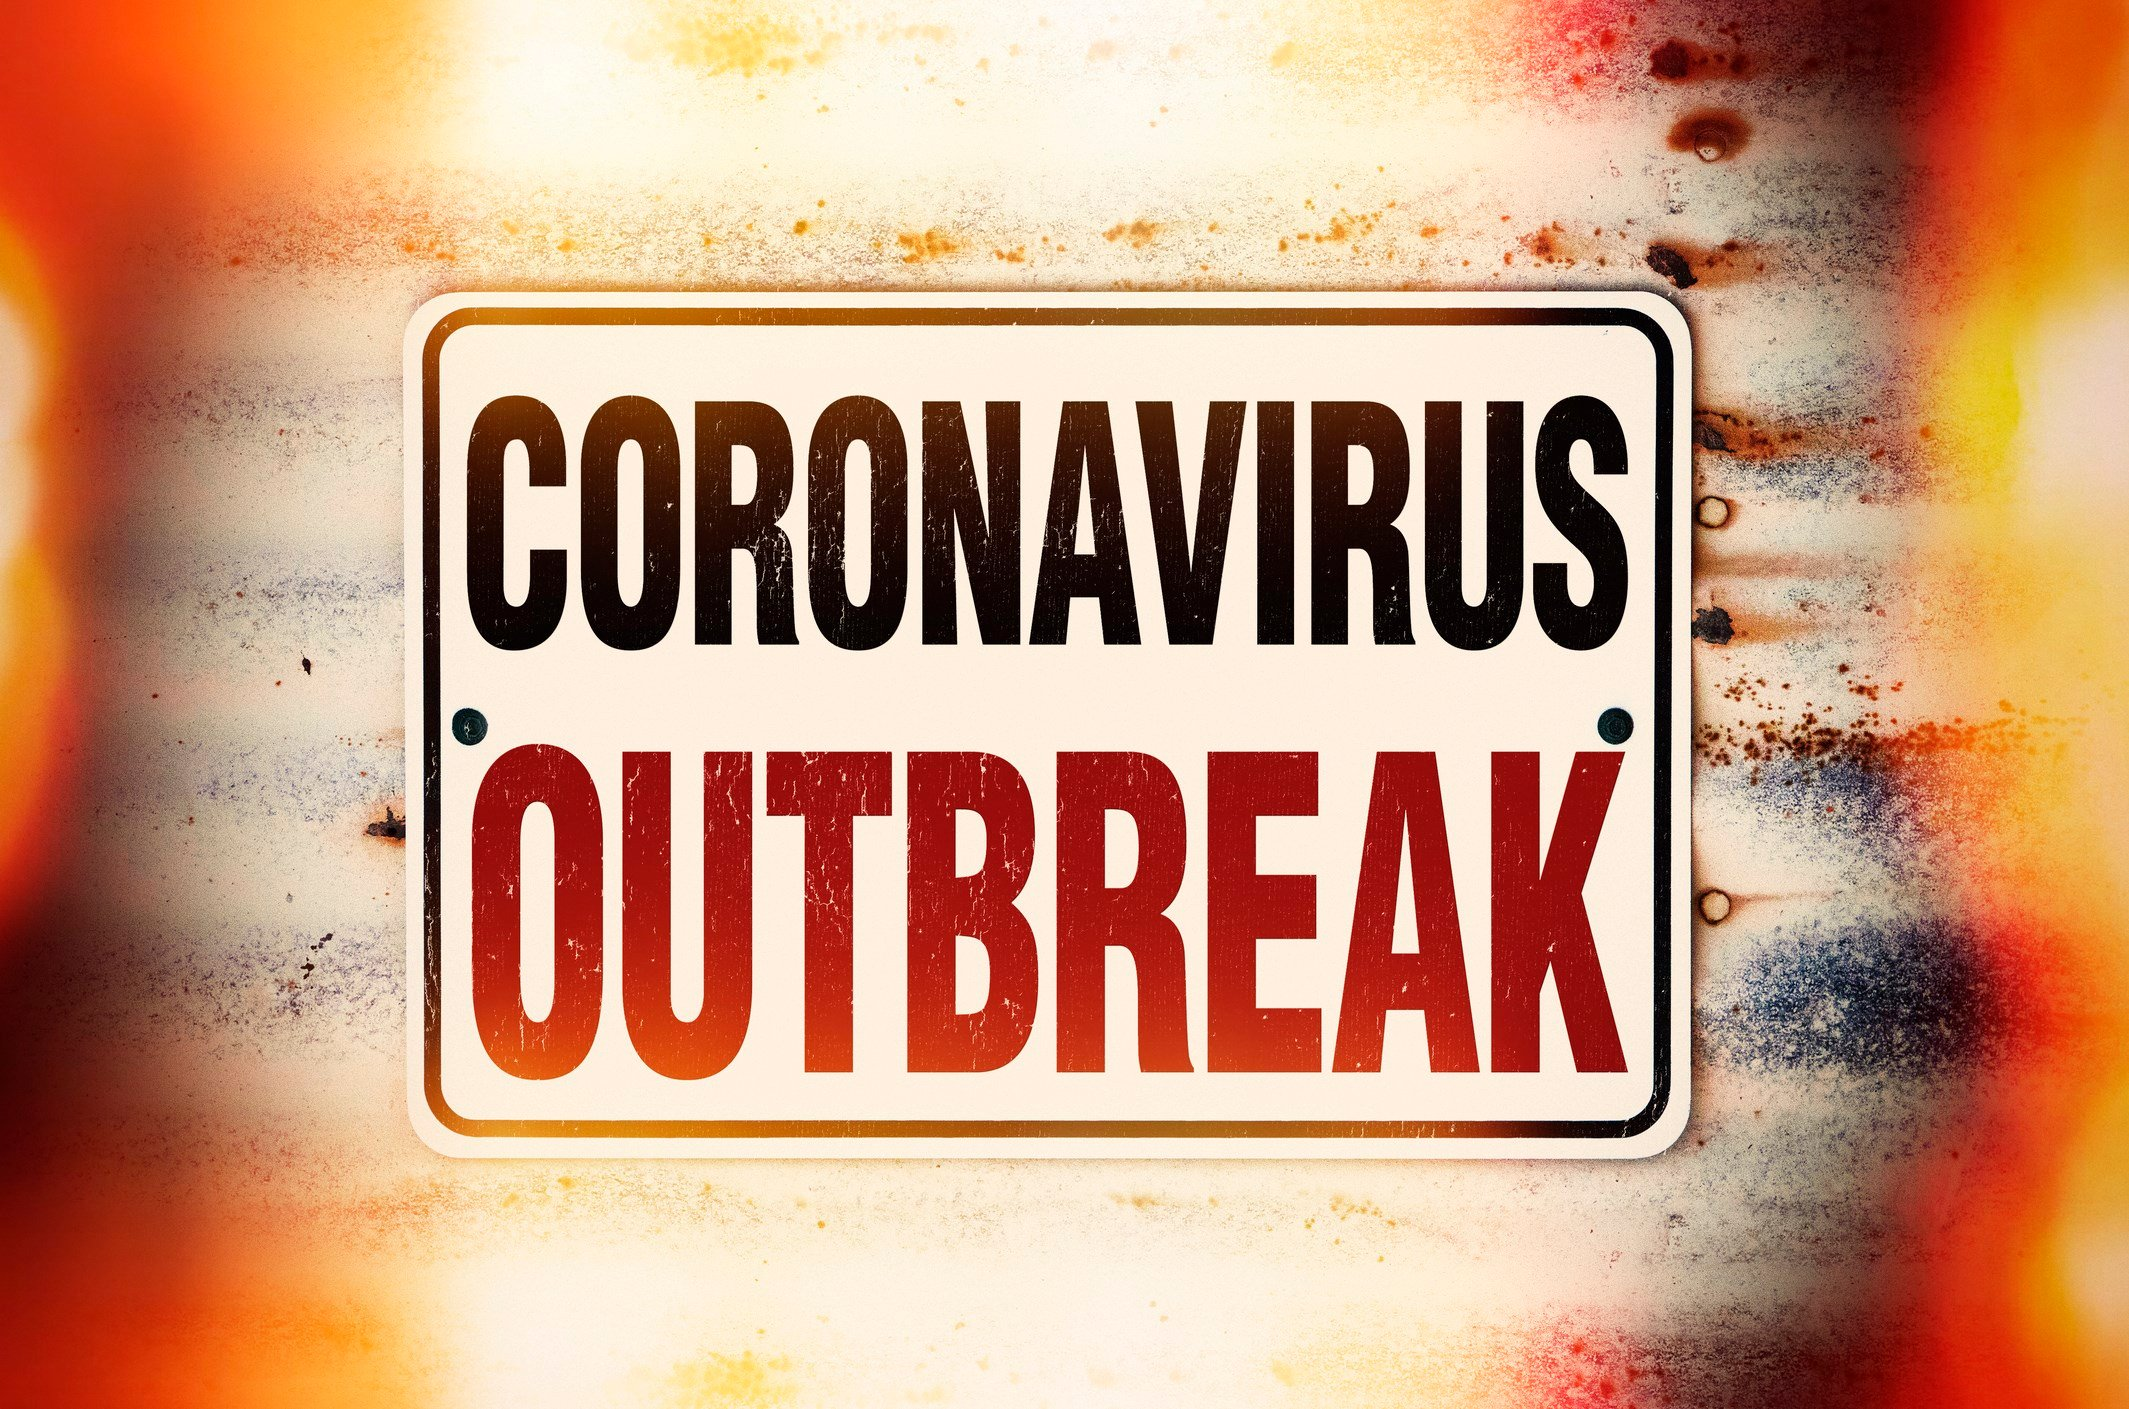 Ohio coronavirus cases jump to 67, including one in Mahoning cou ...